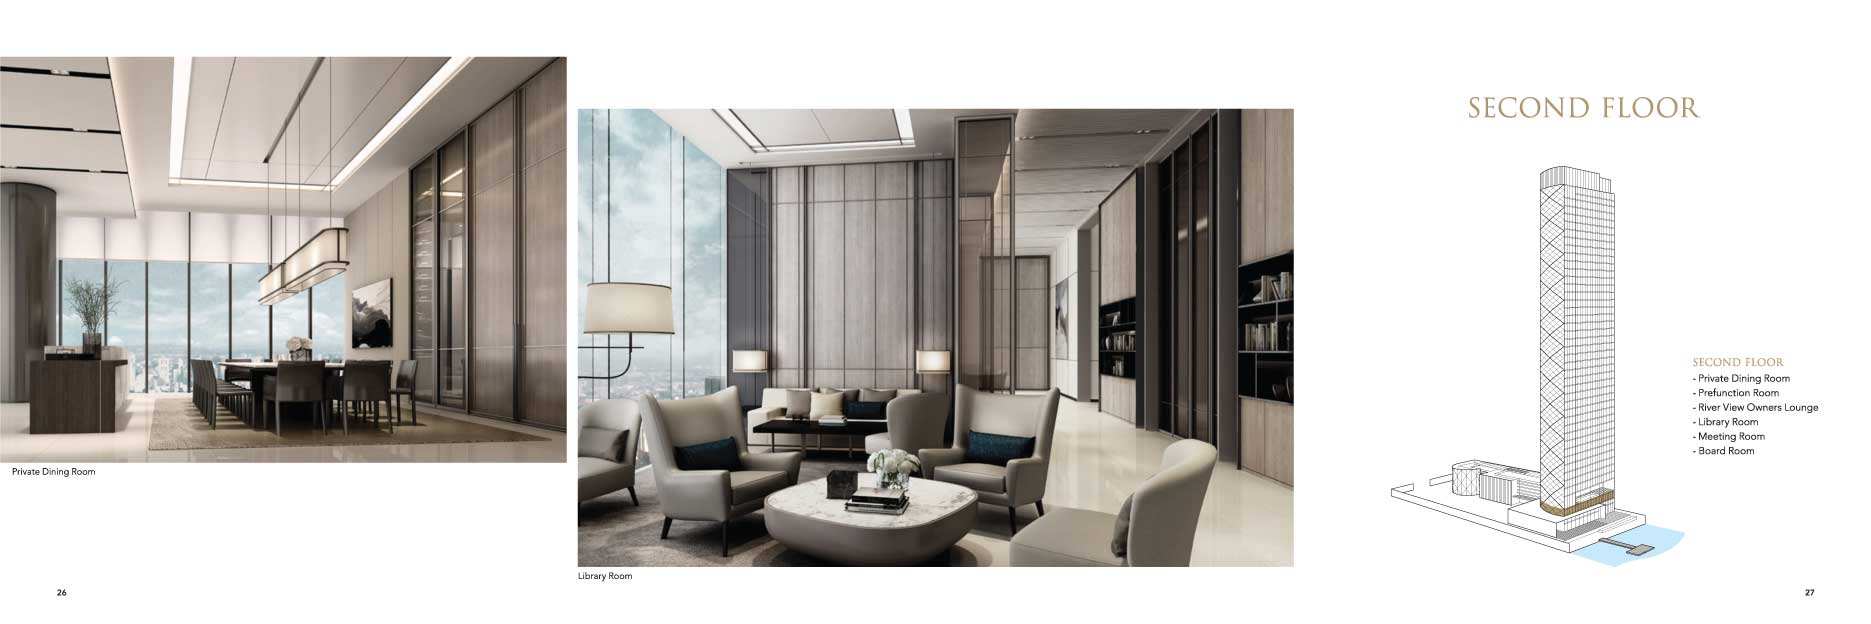 Banyan Tree Residences Riverside Bangkok Brochure 21